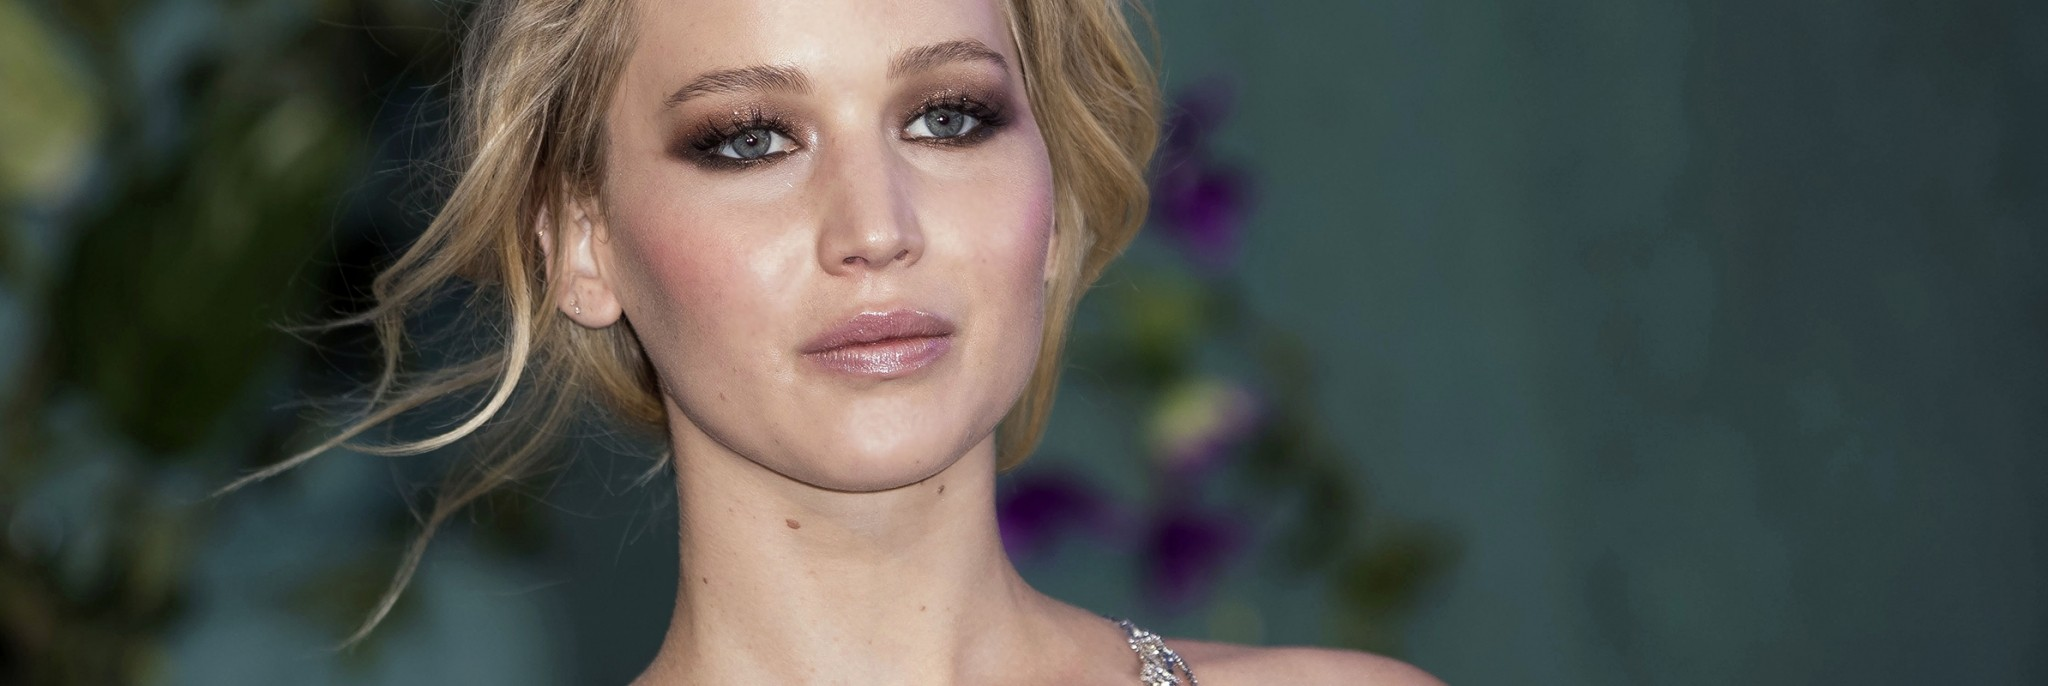 #WCW: Actress, Philanthropist, and Style Icon Jennifer Lawrence